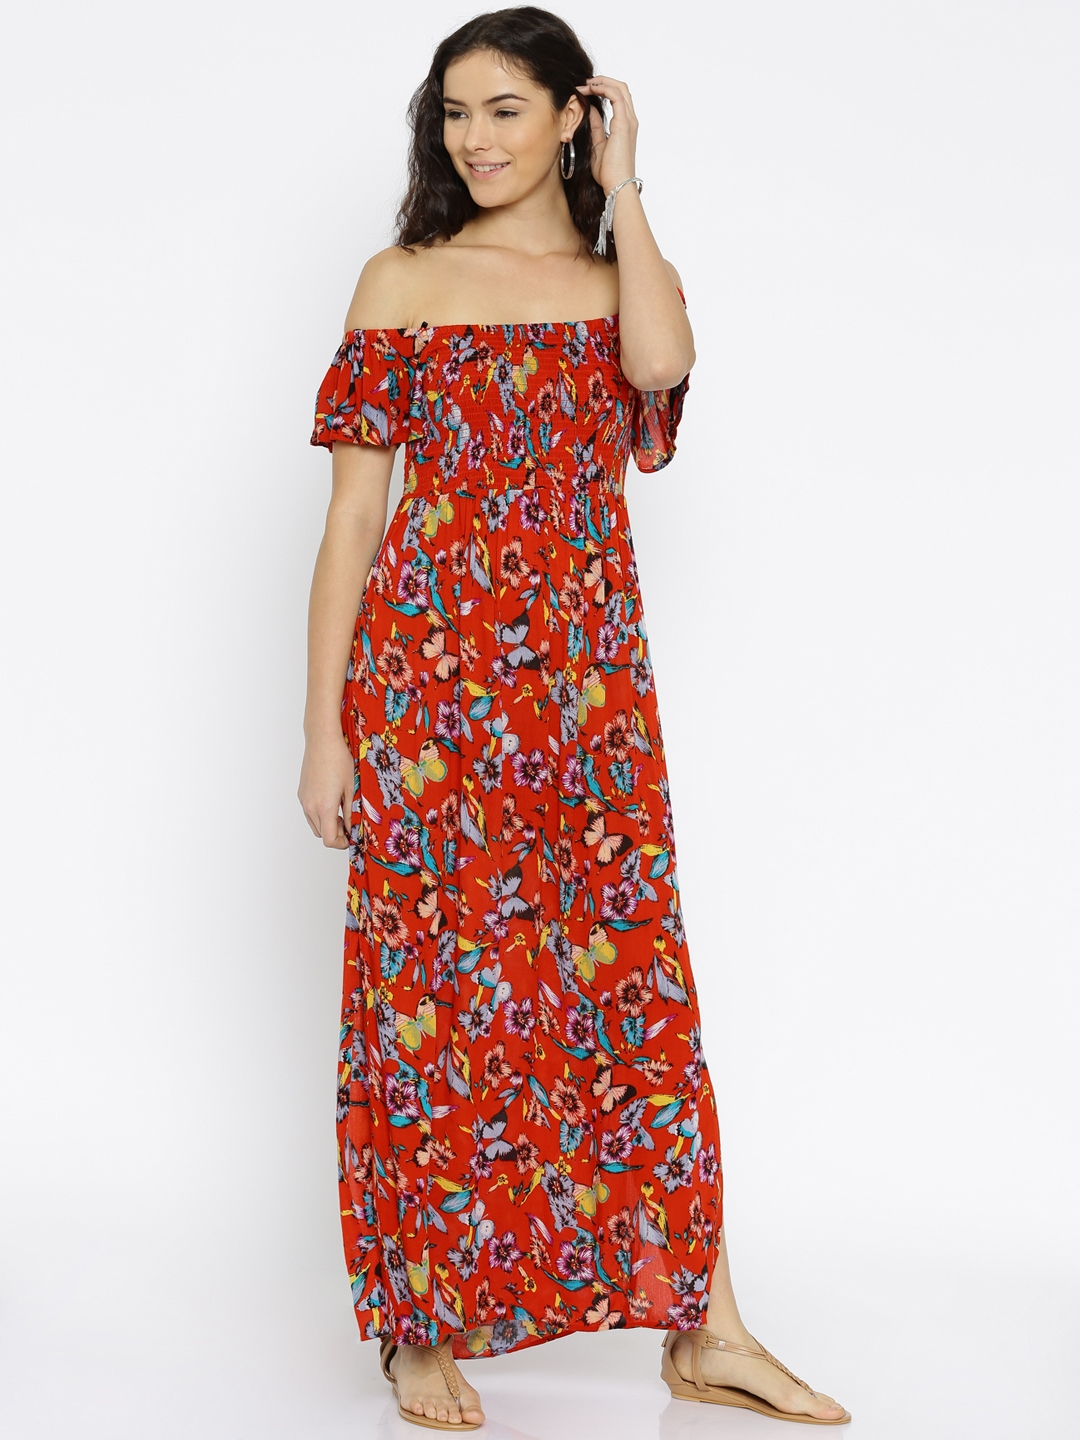 8d7151ee3f5 Buy ONLY Red Floral Print Maxi Dress - Dresses for Women 1741946 ...